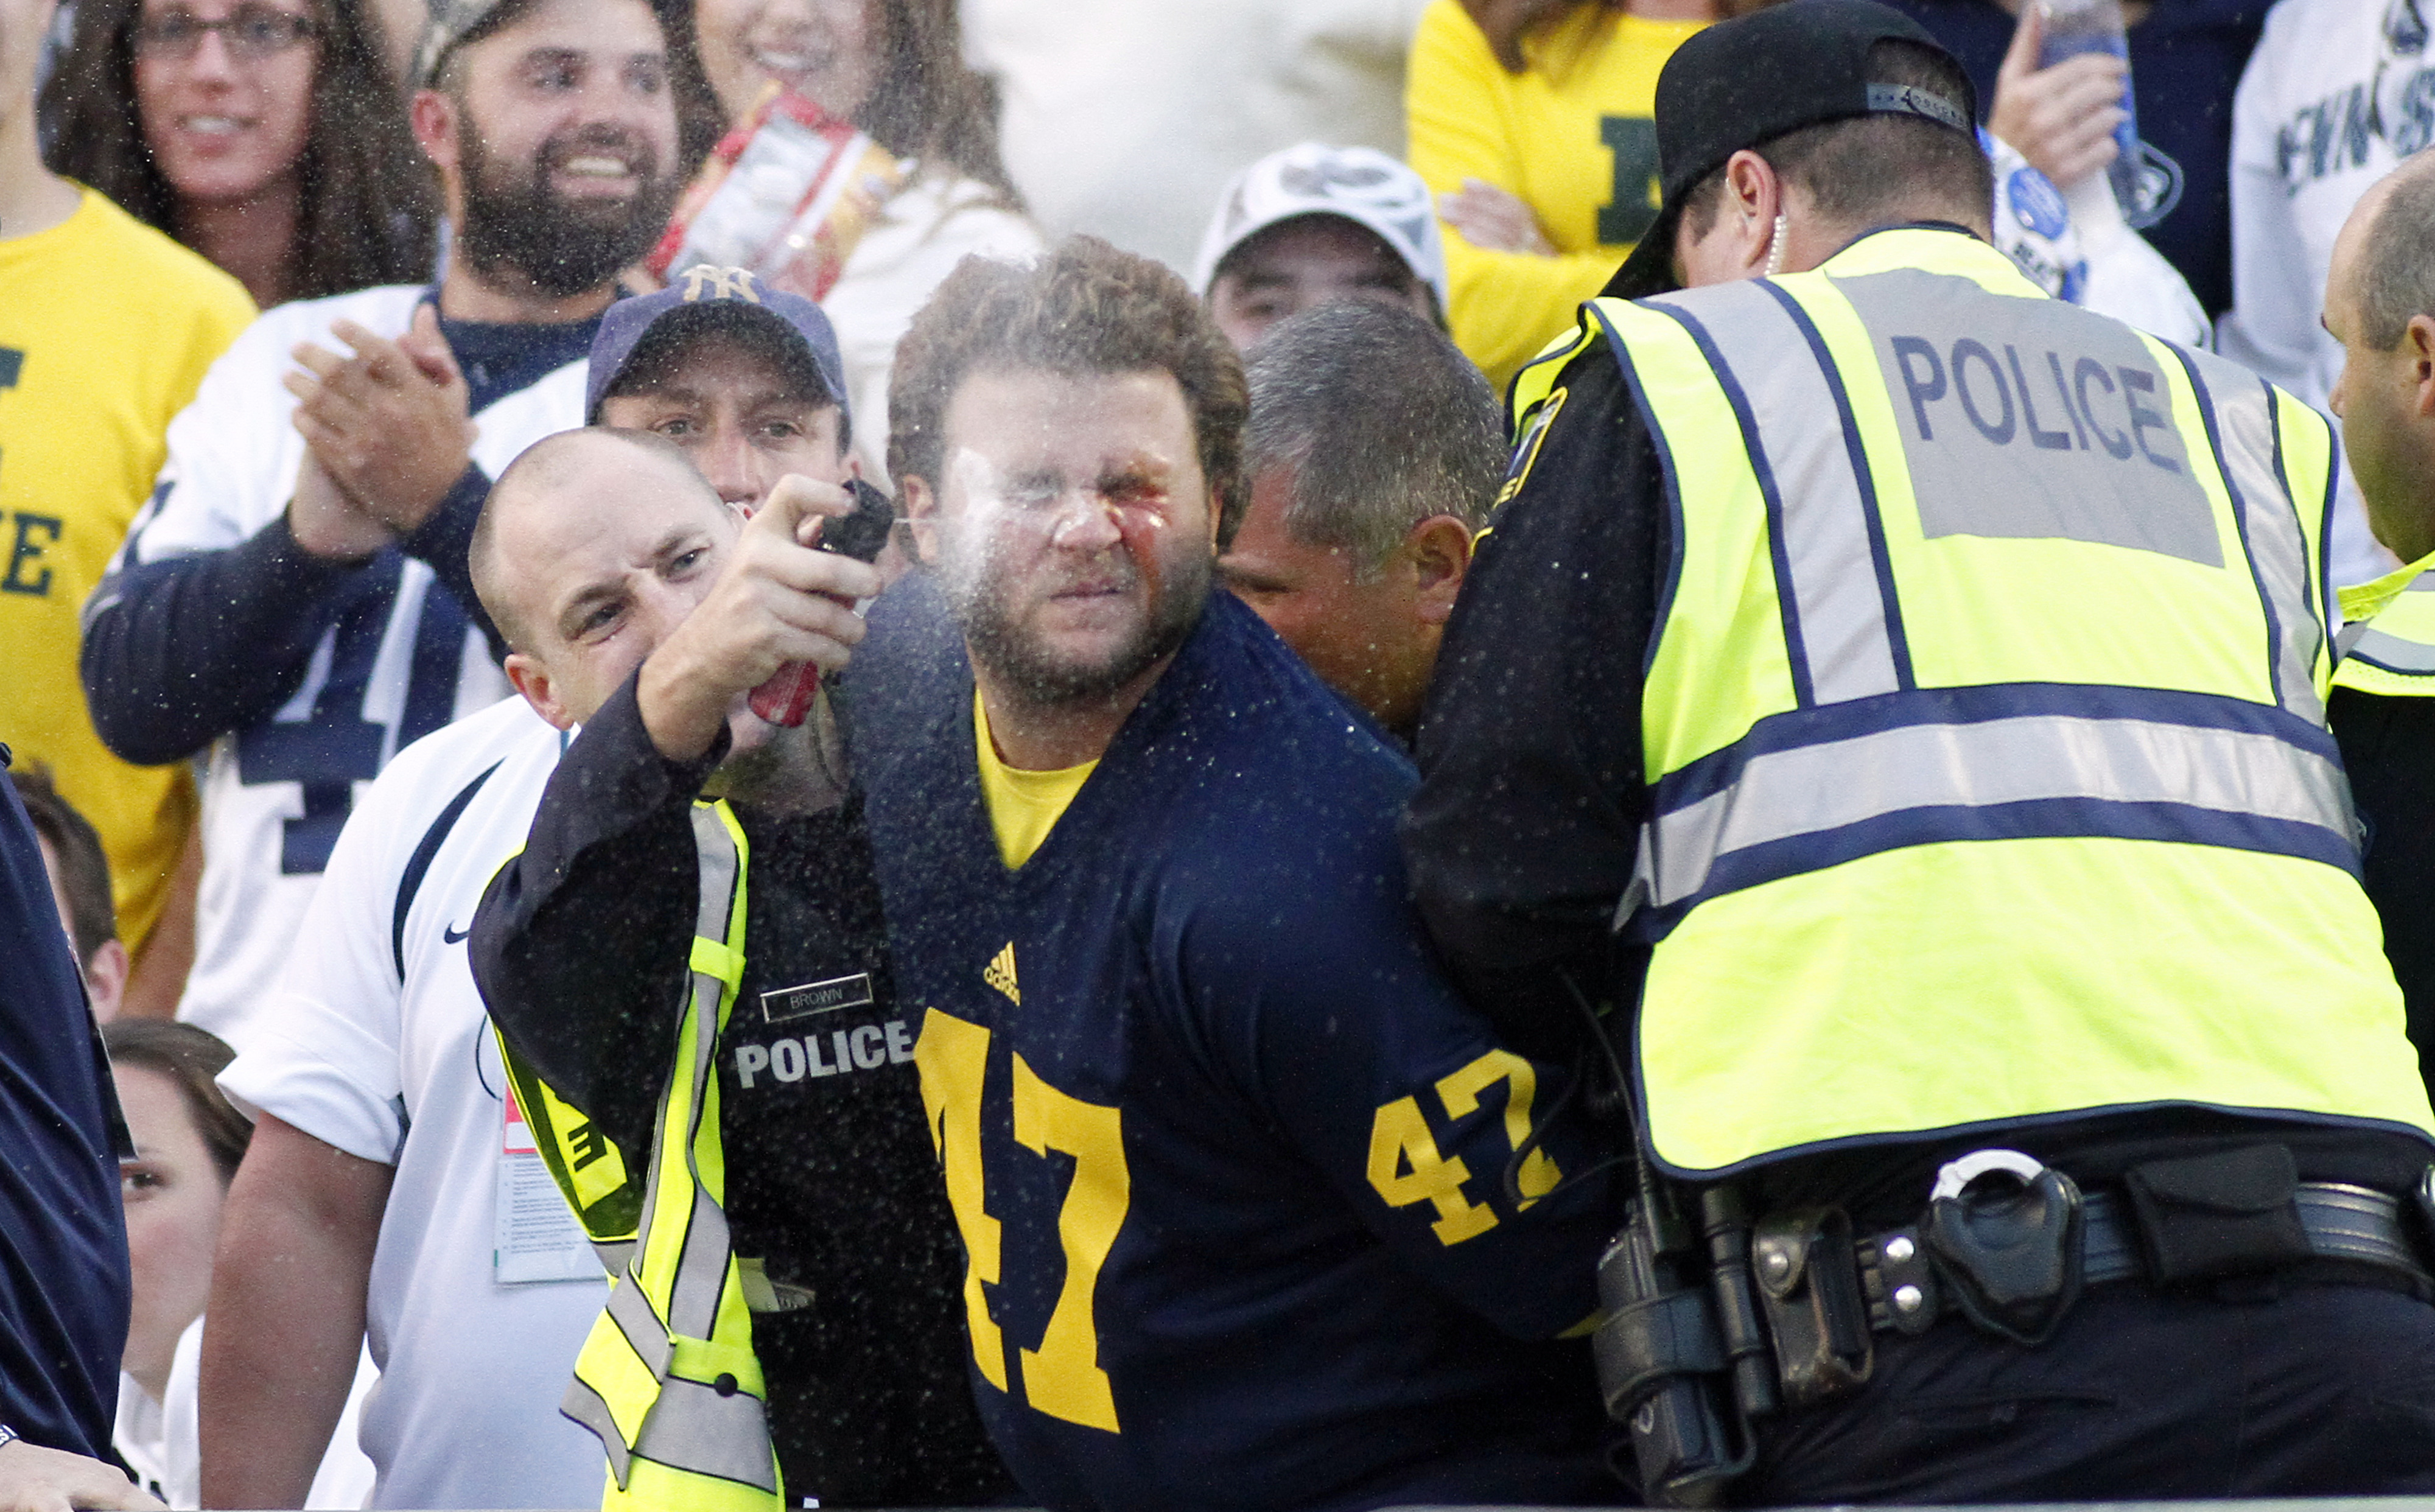 i join with the chorus and declare this the luckiest michigan fan on the planet